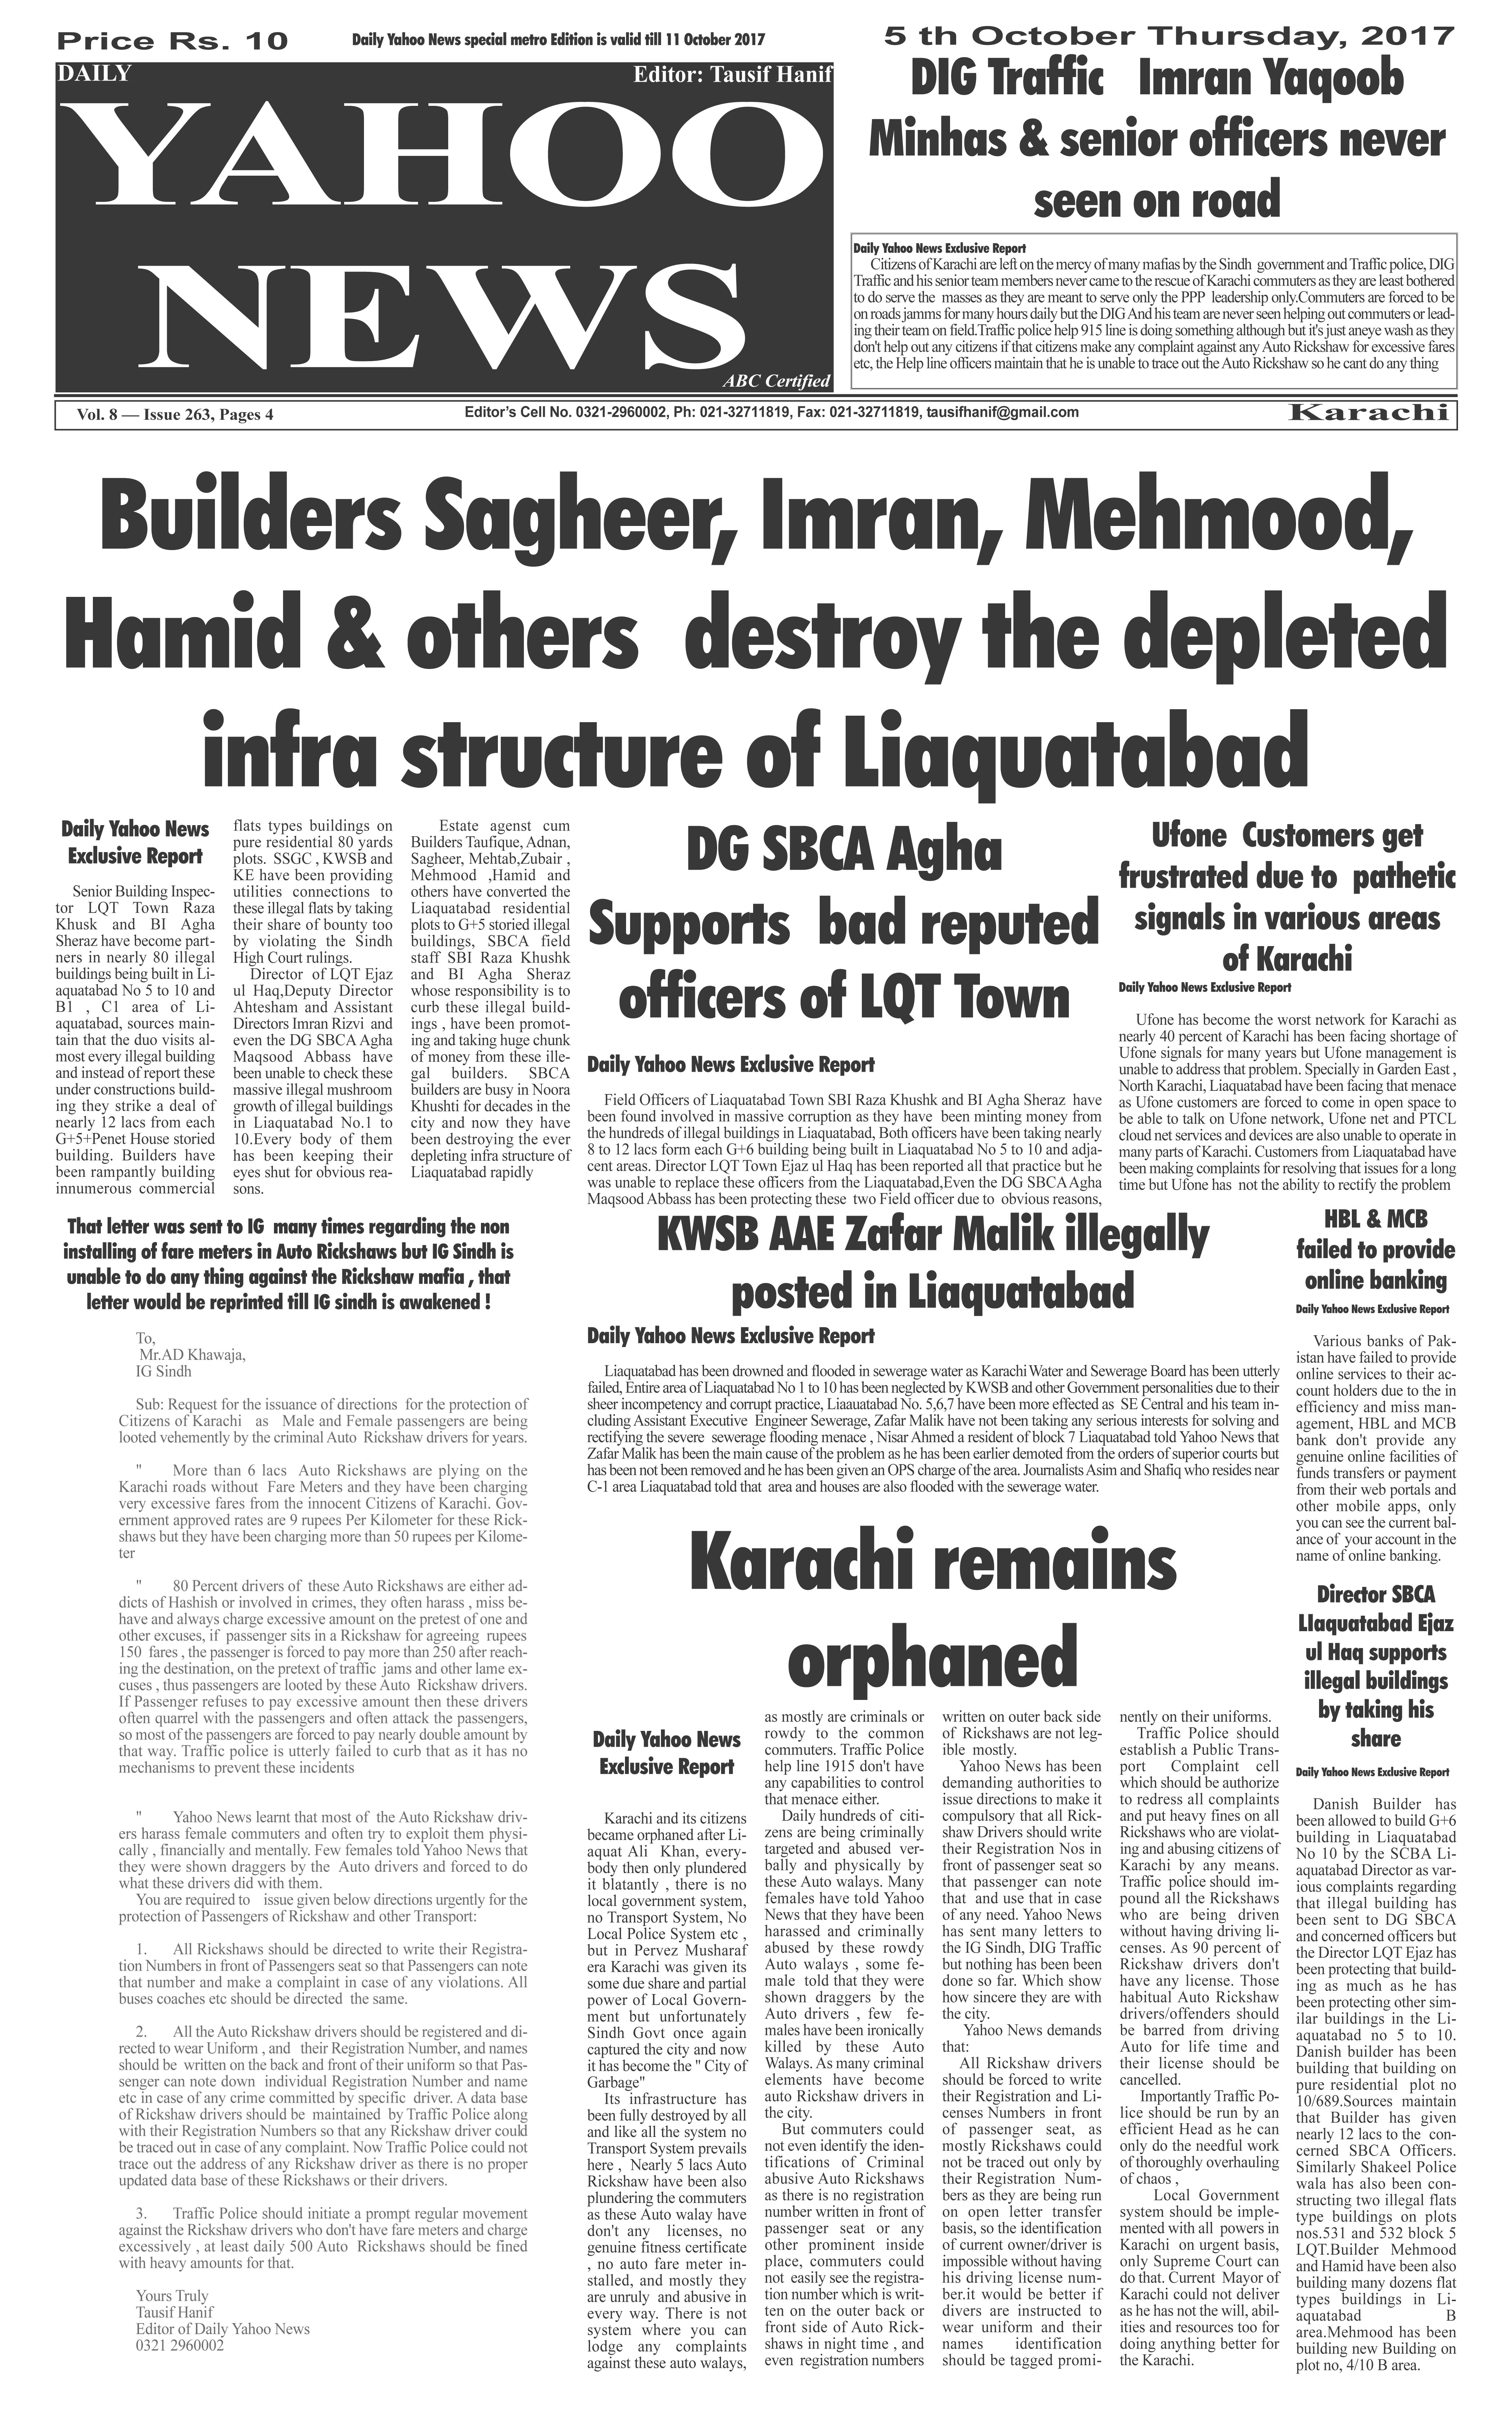 Daily Yahoo News metro Edition dated 5-10-2017